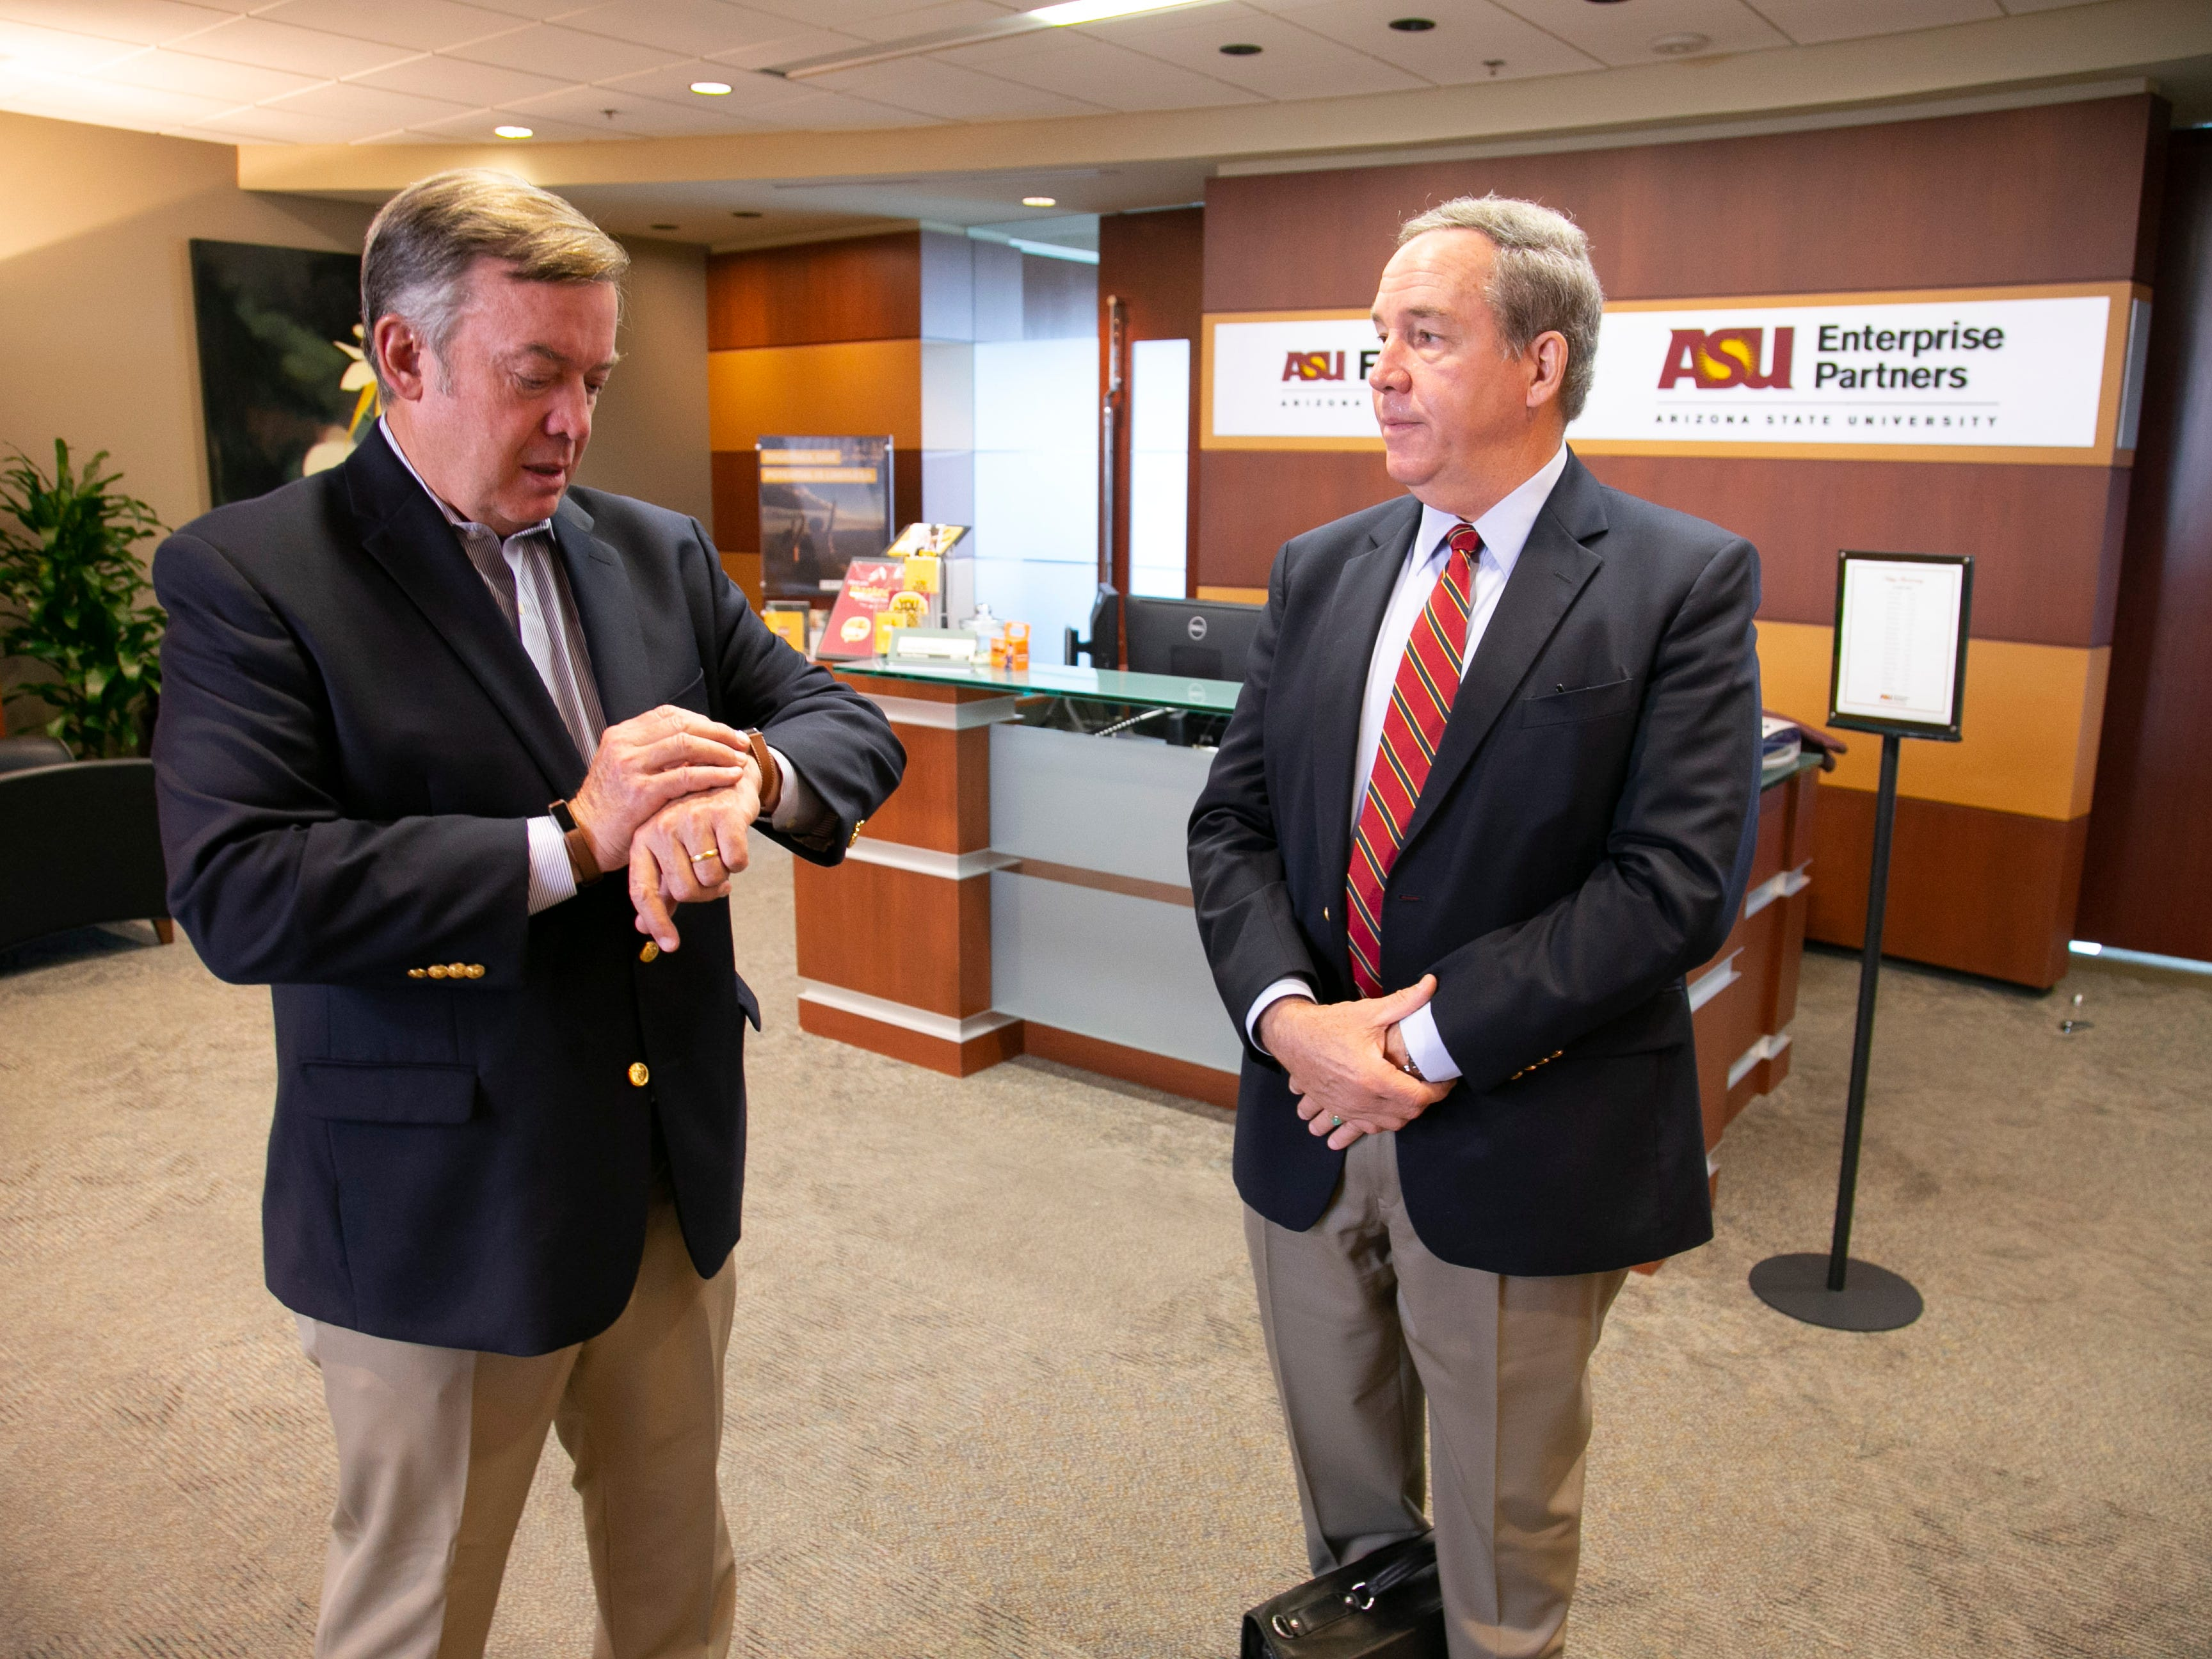 ASU President Michael Crow (left) checks his watch before heading to his next meeting. Crow also speaks with Benjamin Freakley, a retired U.S. Army general and ASU special adviser, at the Fulton Center at ASU in Tempe on Oct. 16, 2018.